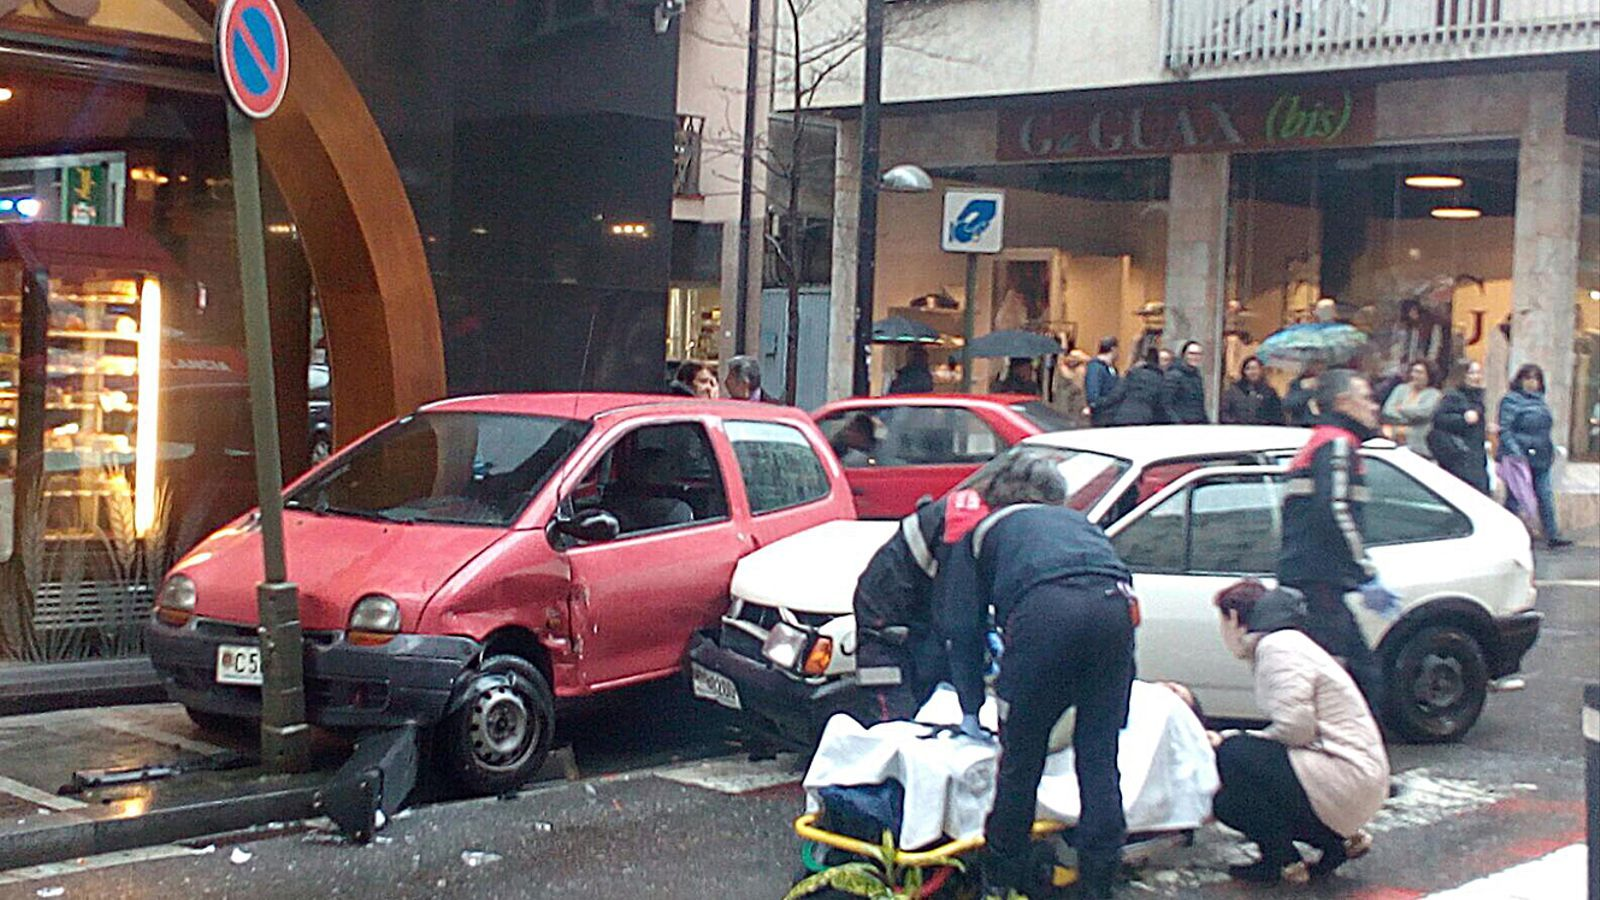 Accident a Andorra la Vella